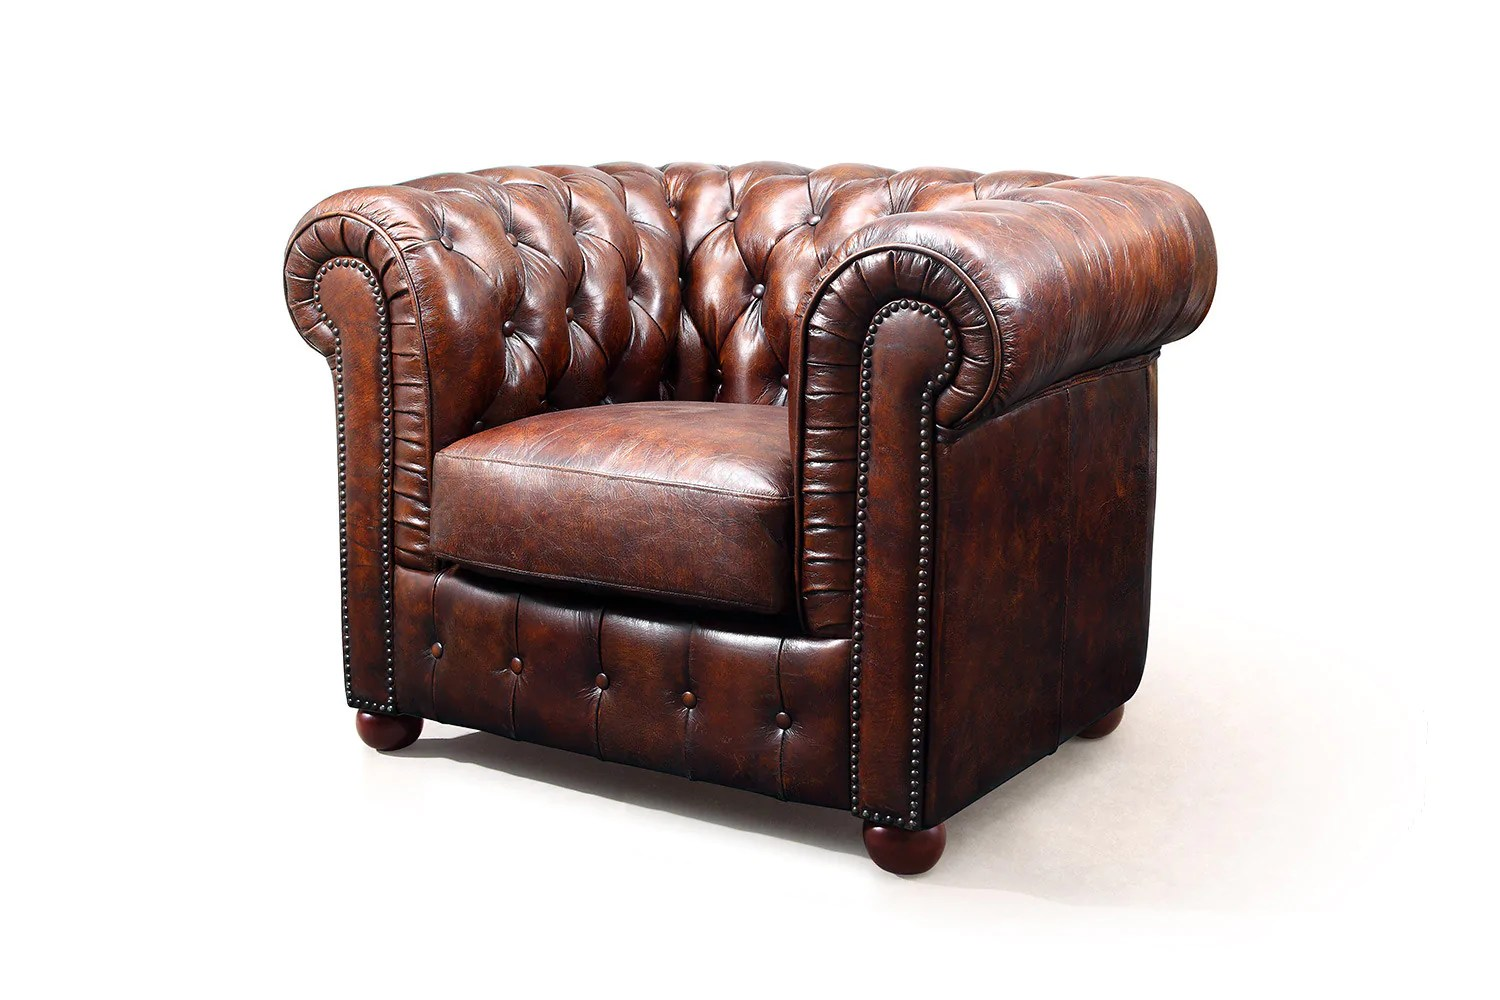 Leather Chesterfield Chair The Original Chesterfield Chair Rose And Moore